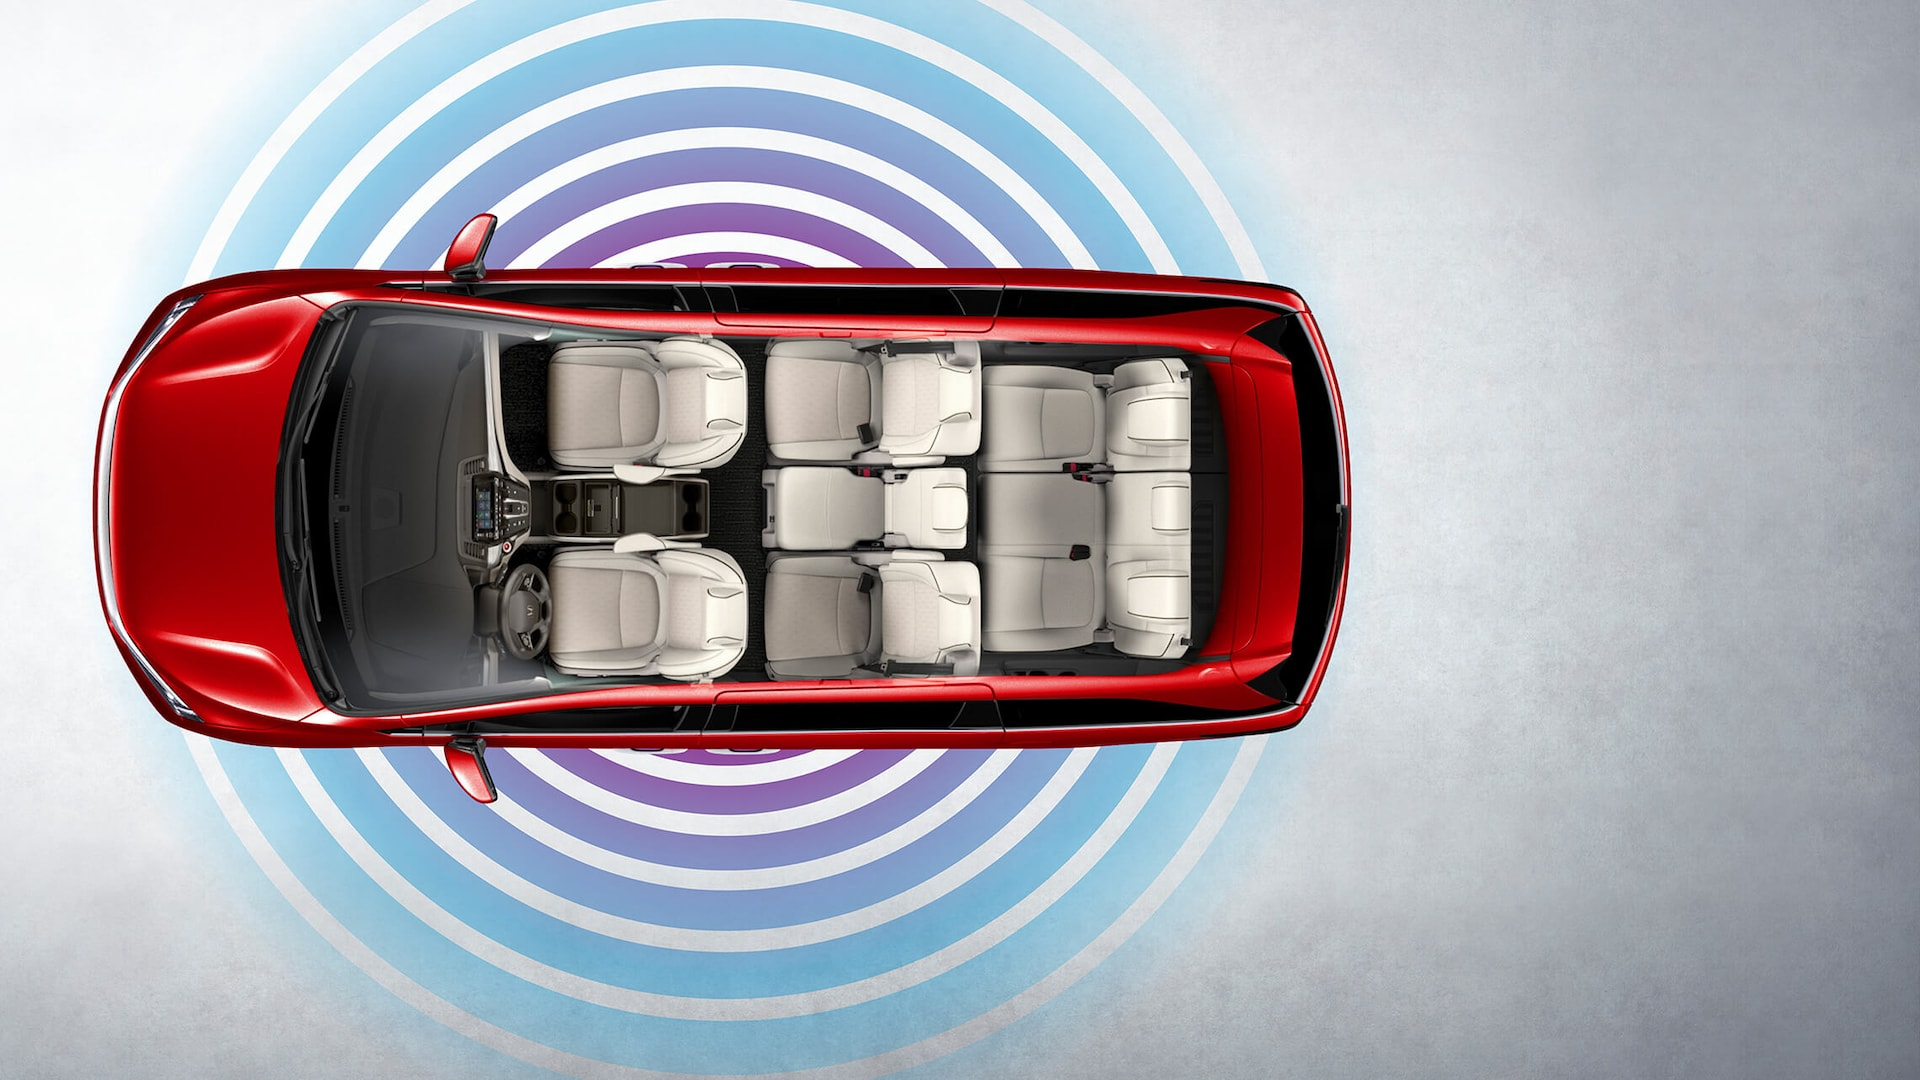 Overhead view of the 2022 Honda Odyssey Elite in Radiant Red Metallic II with Wi-Fi® hotspot graphic overlay.